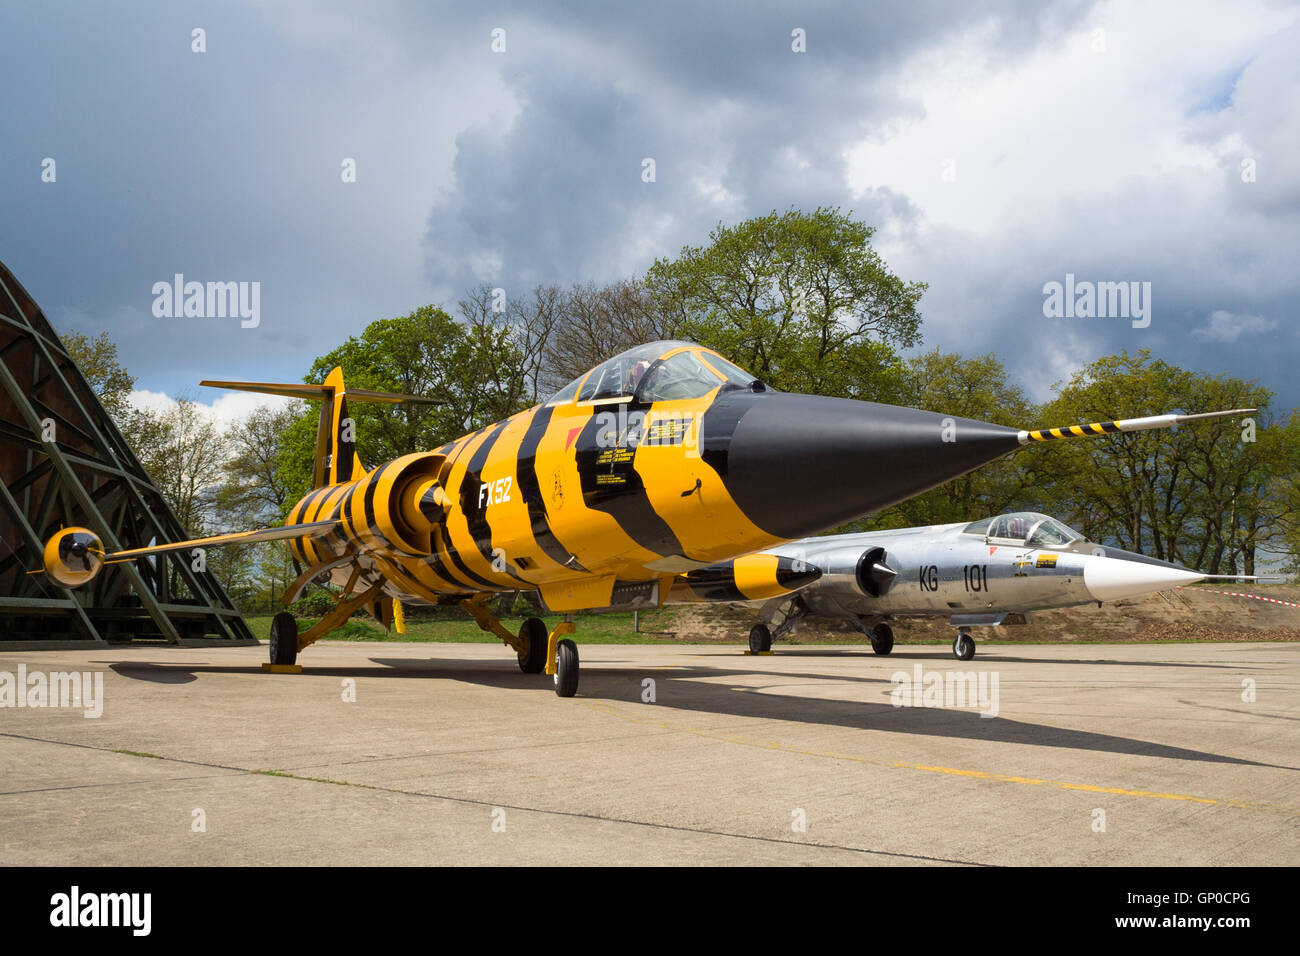 Two F-104 Starfighter on display at the former airbase RAF Laarbruch - Stock Image